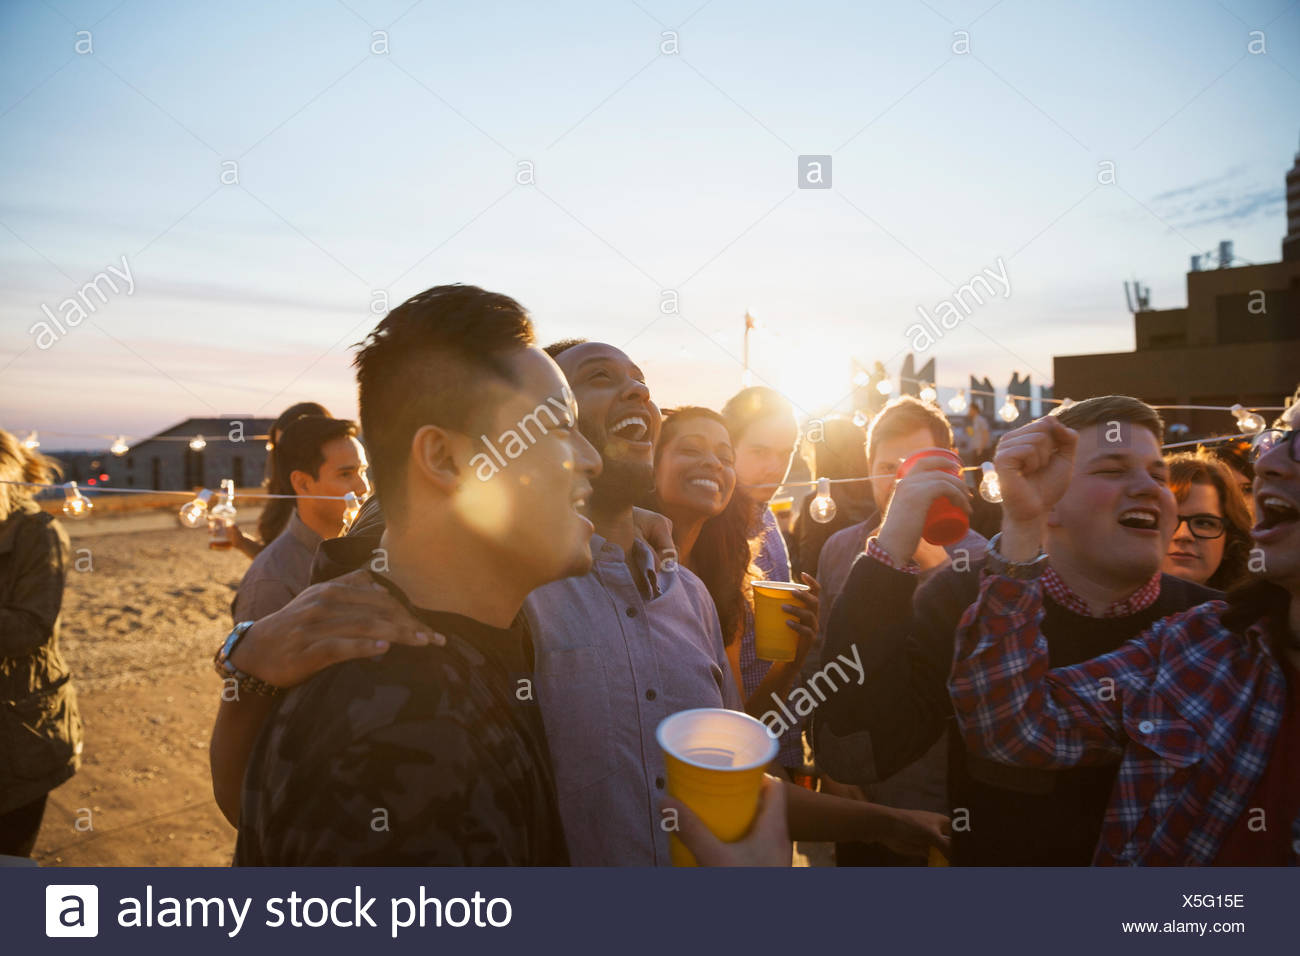 Friends enjoying urban rooftop party Photo Stock